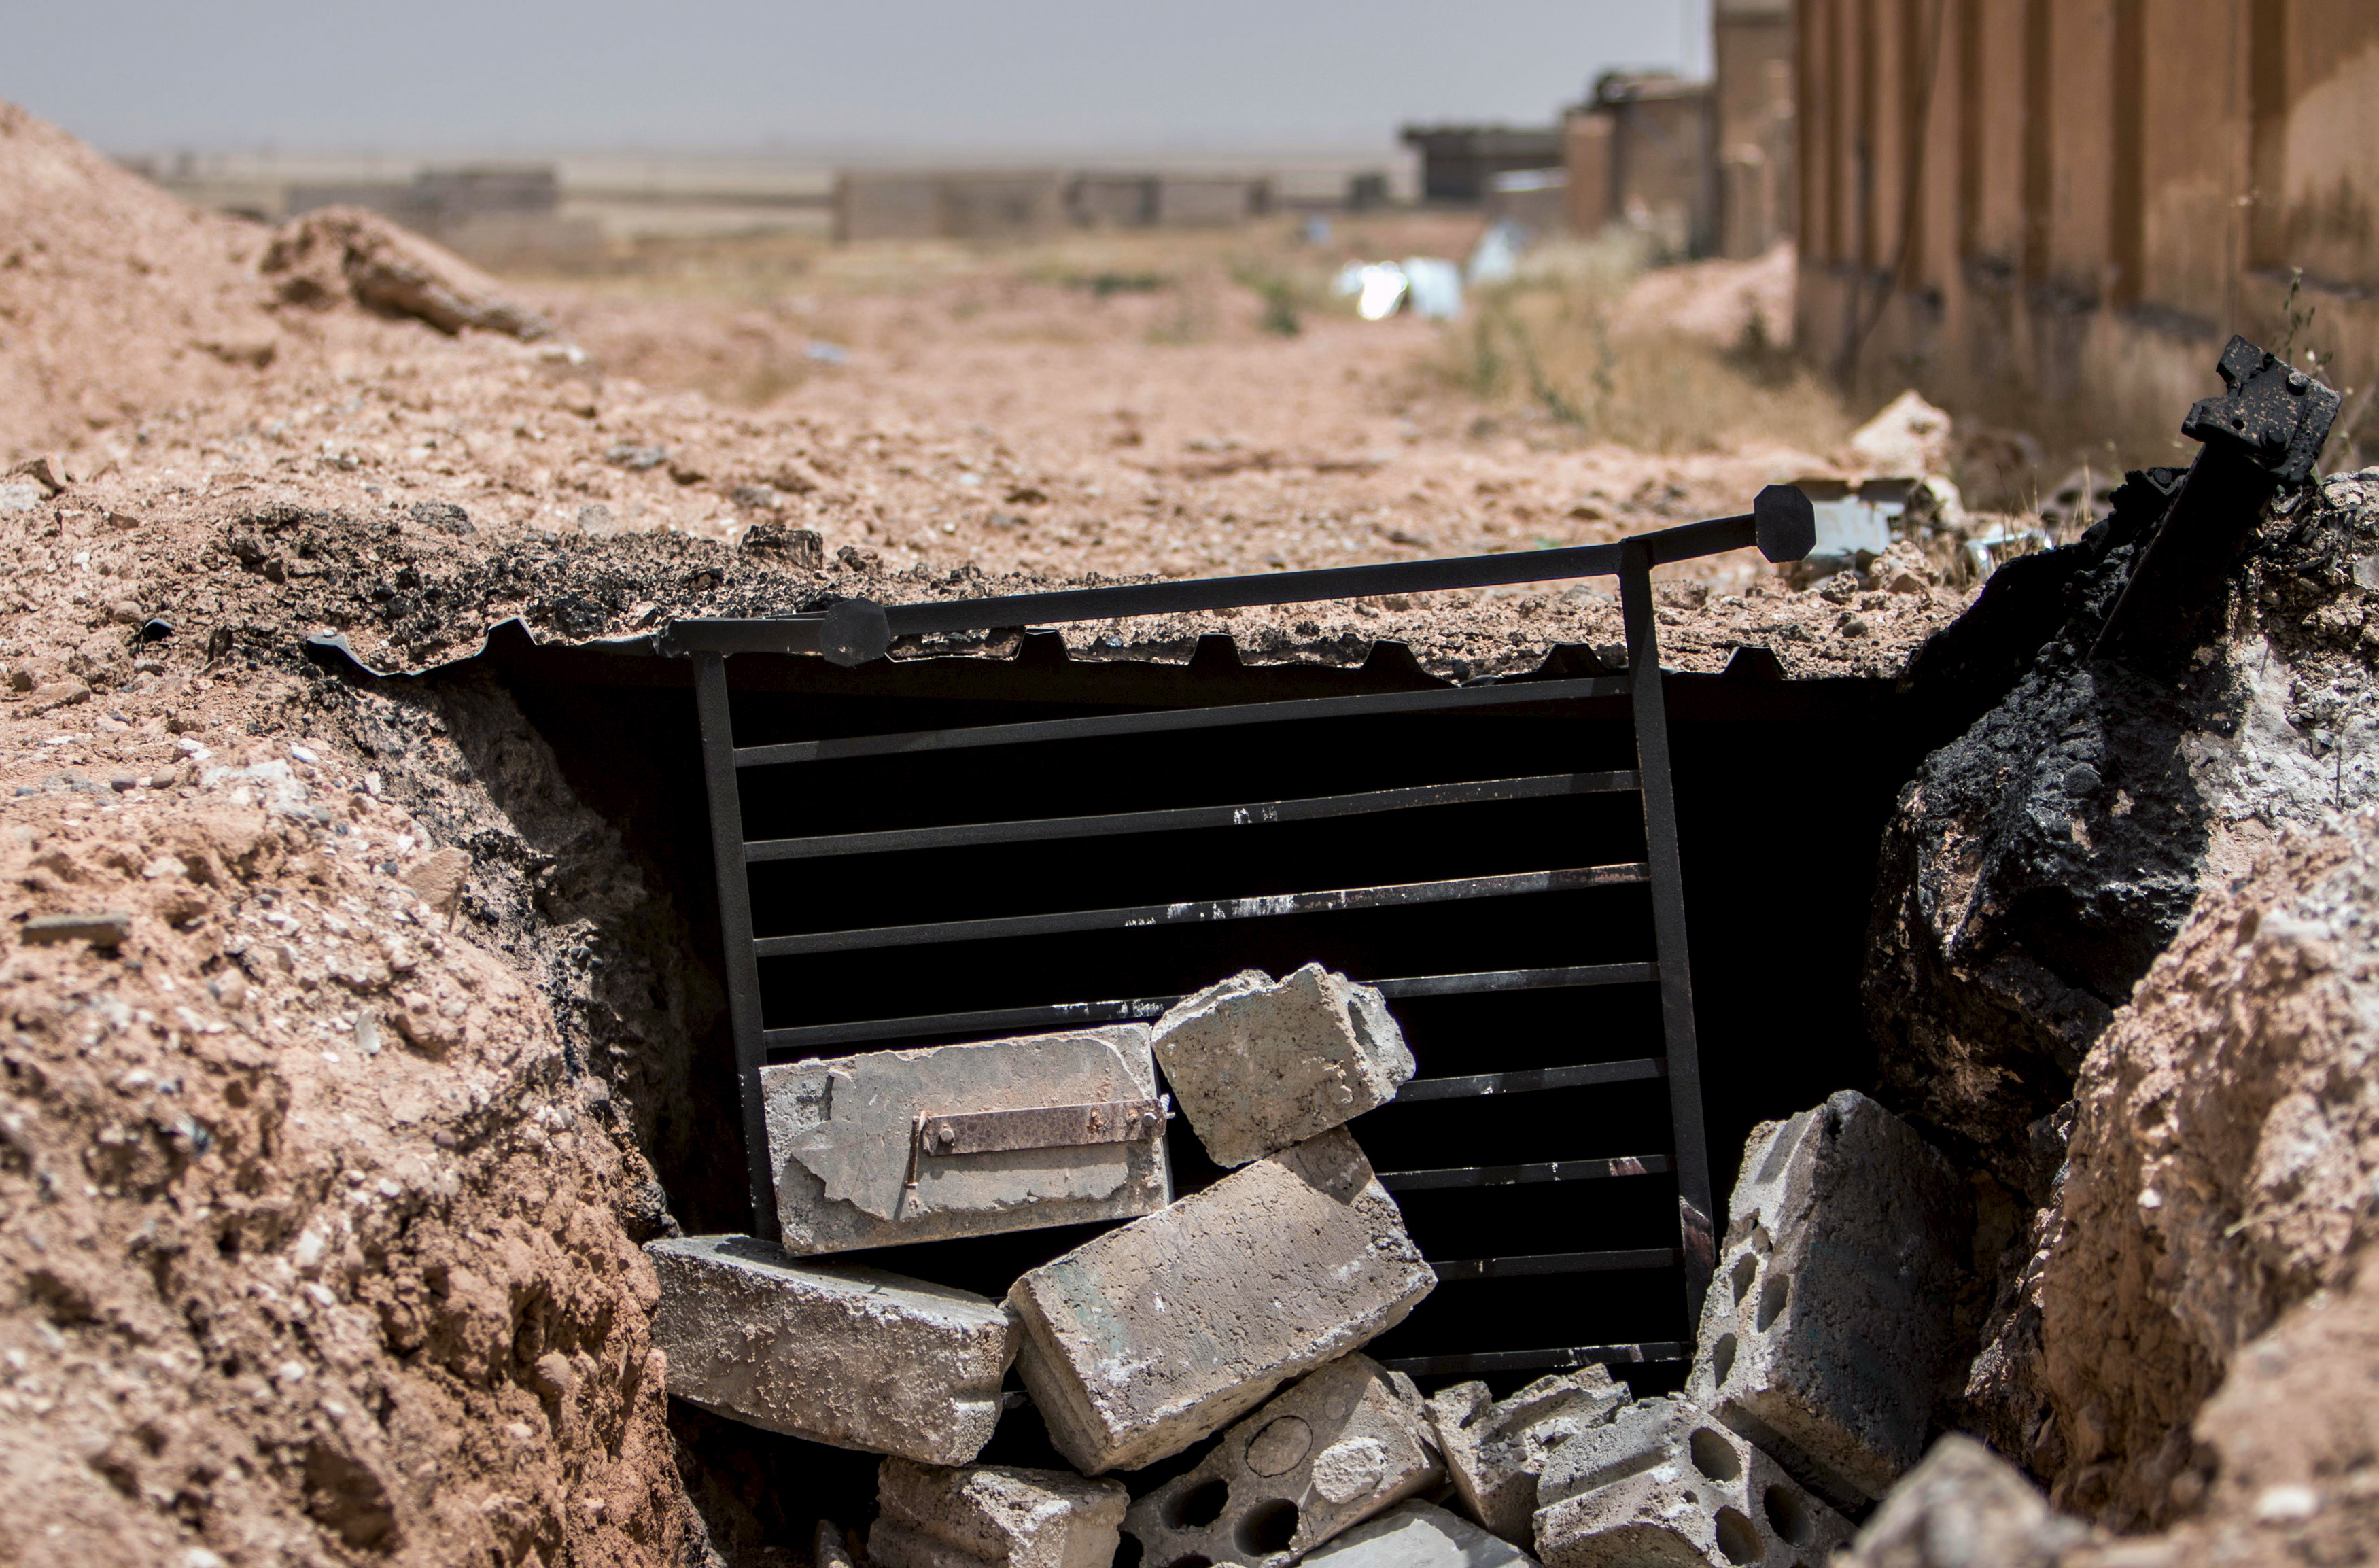 A view shows the entrance of a tunnel used by Islamic State fighters as a shelter in the town of al-Mabroukah after the Kurdish People's Protection Units (YPG) they took control of the area May 28, 2015. A Syrian Kurdish militia has captured a town from Islamic State in the northeast, a group monitoring the war reported on Wednesday, compounding recent losses for the jihadists in a strategic corner of Syria. The capture of the town of al-Mabroukah by the YPG militia opens the road for its forces to advance towards the Islamic State's stronghold in Raqqa province, the Syrian Observatory for Human Rights reported. REUTERS/Rodi Said - GF10000110254